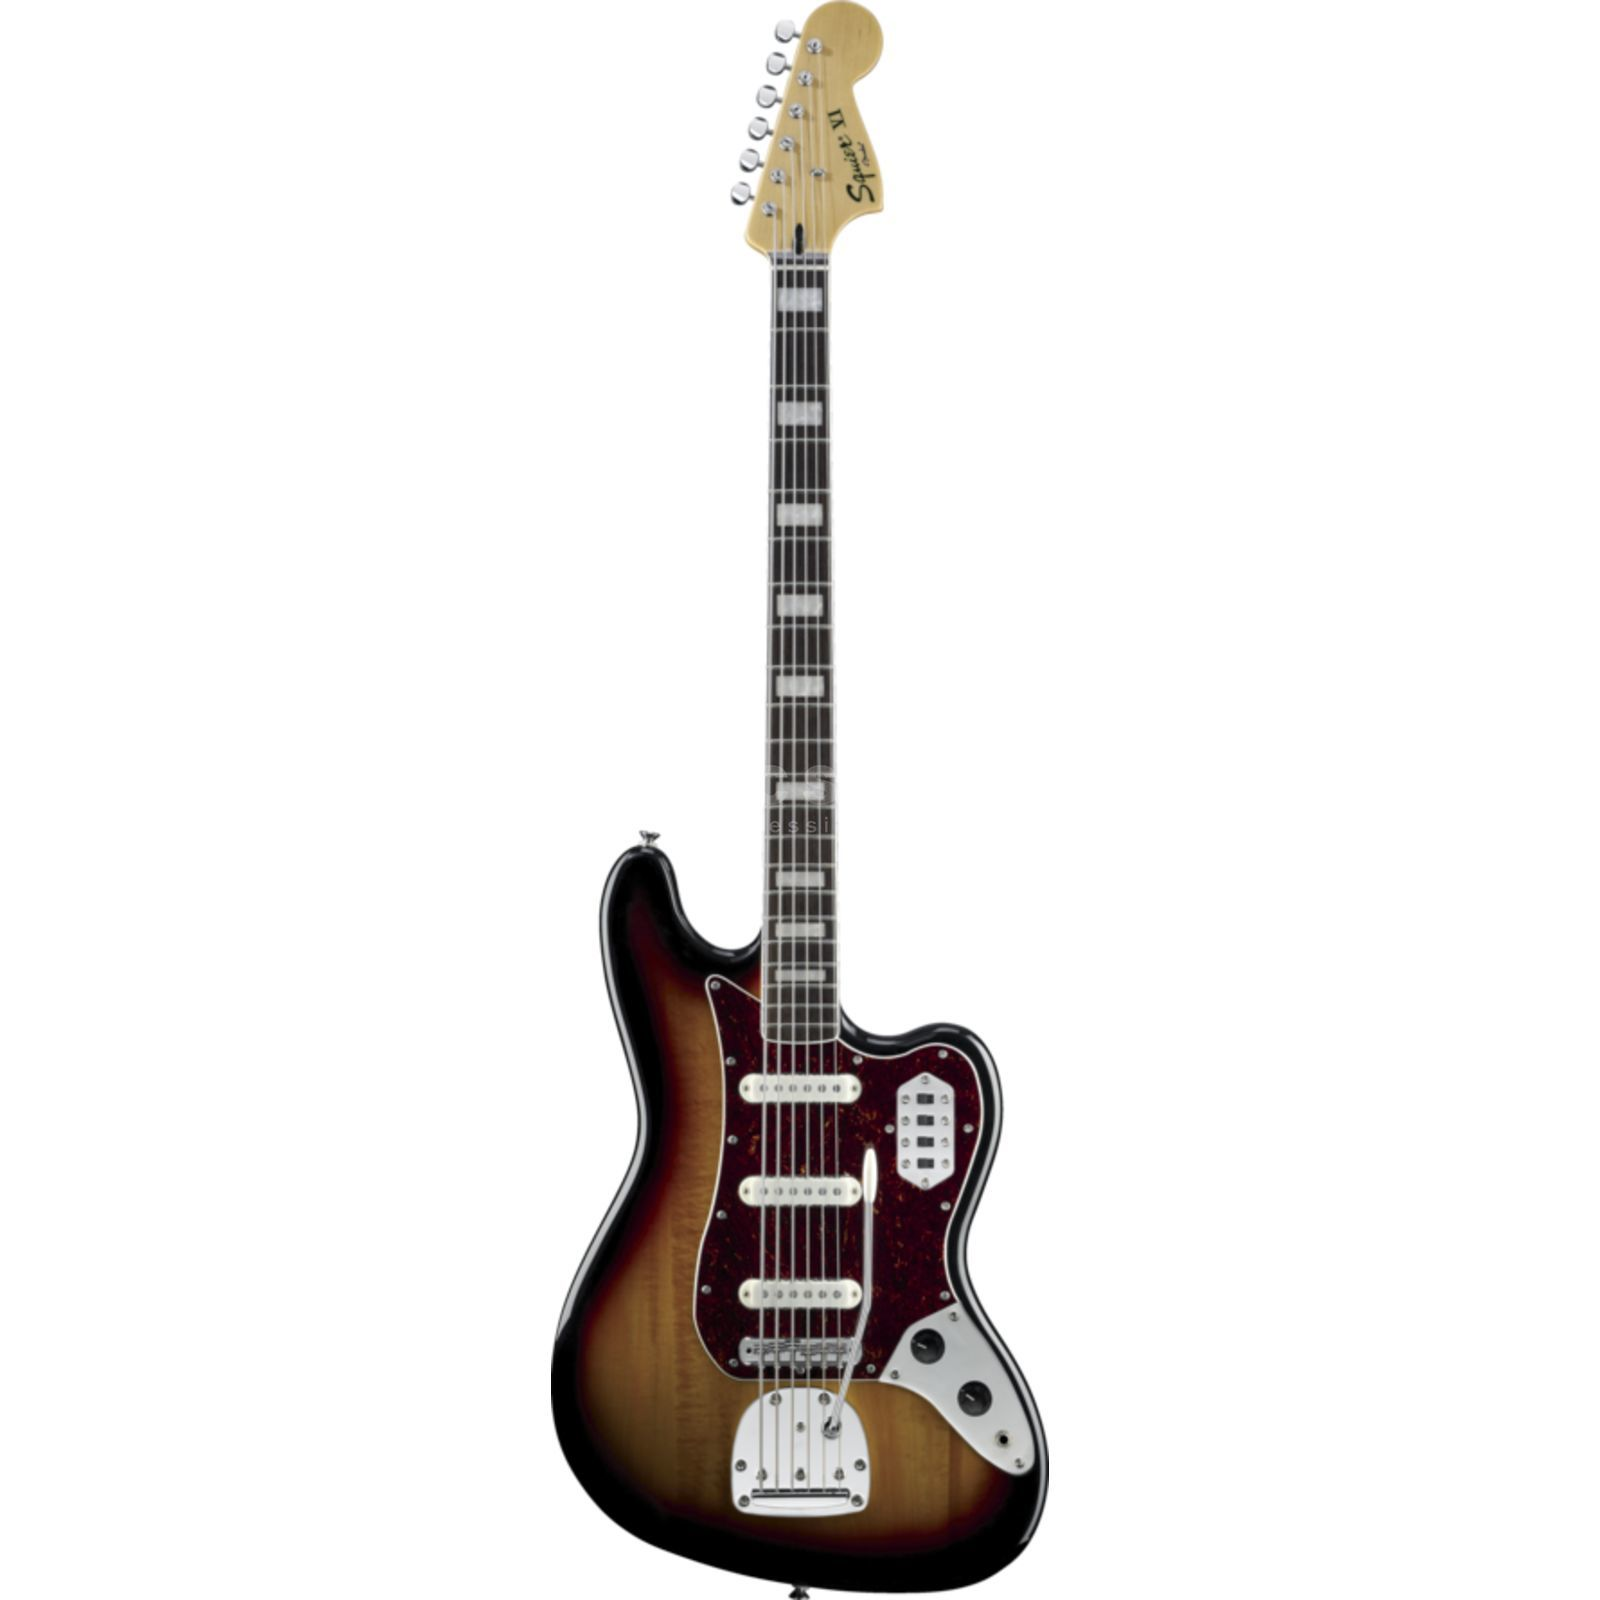 Fender Squier Squier VM Bass VI RW 3CS 3-Color Sunburst Zdjęcie produktu